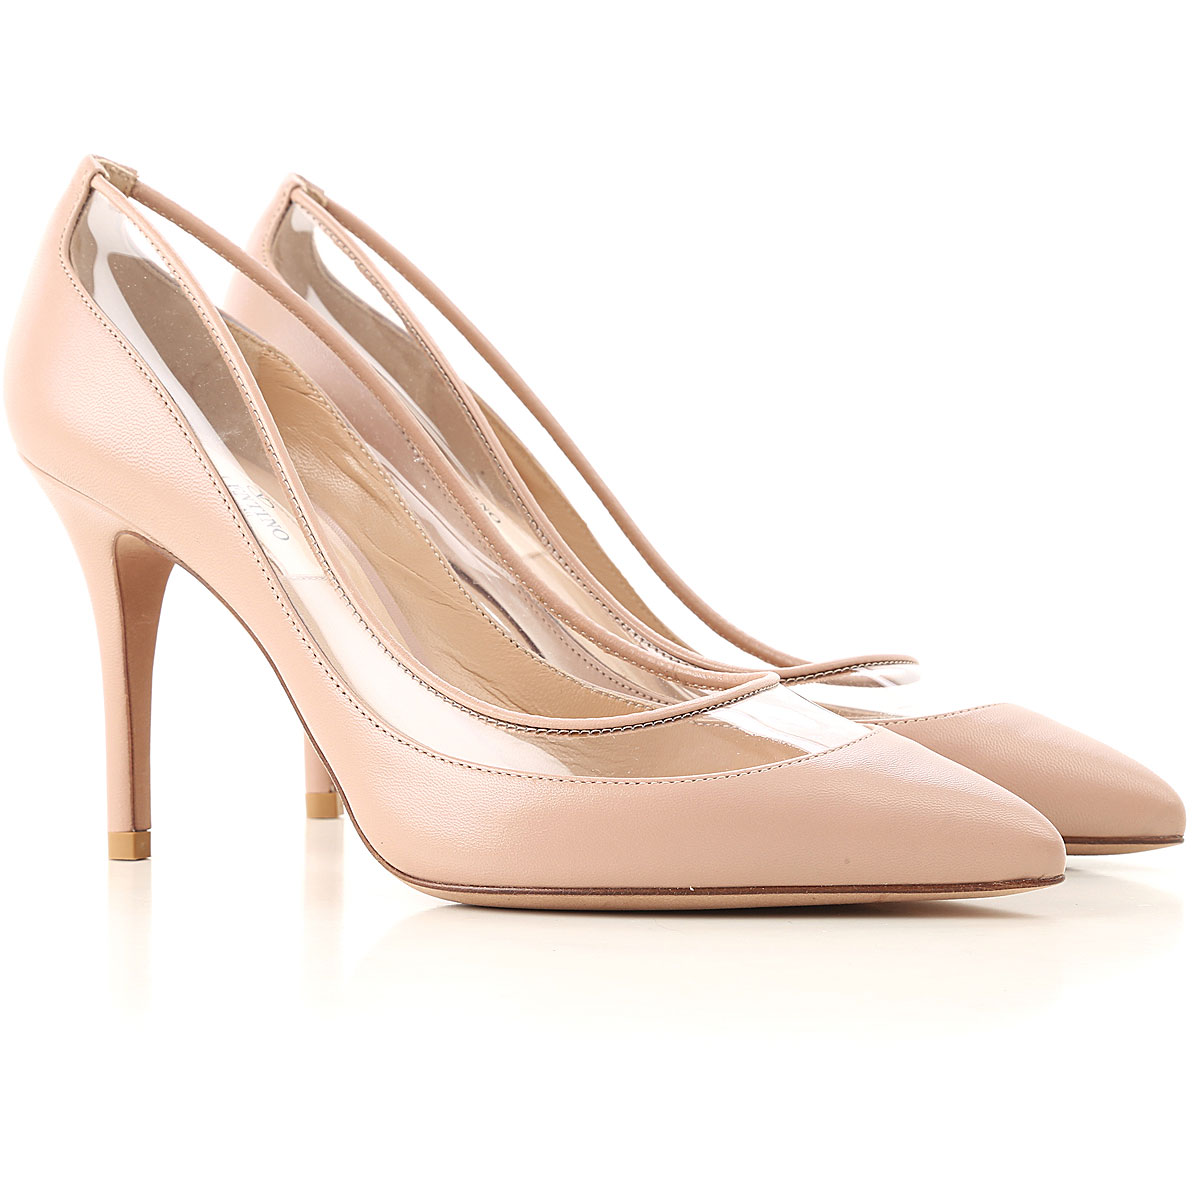 Valentino Garavani Pumps & High Heels for Women On Sale in Outlet, Antique Rose, Leather, 2019, 6 7 8 8.5 9